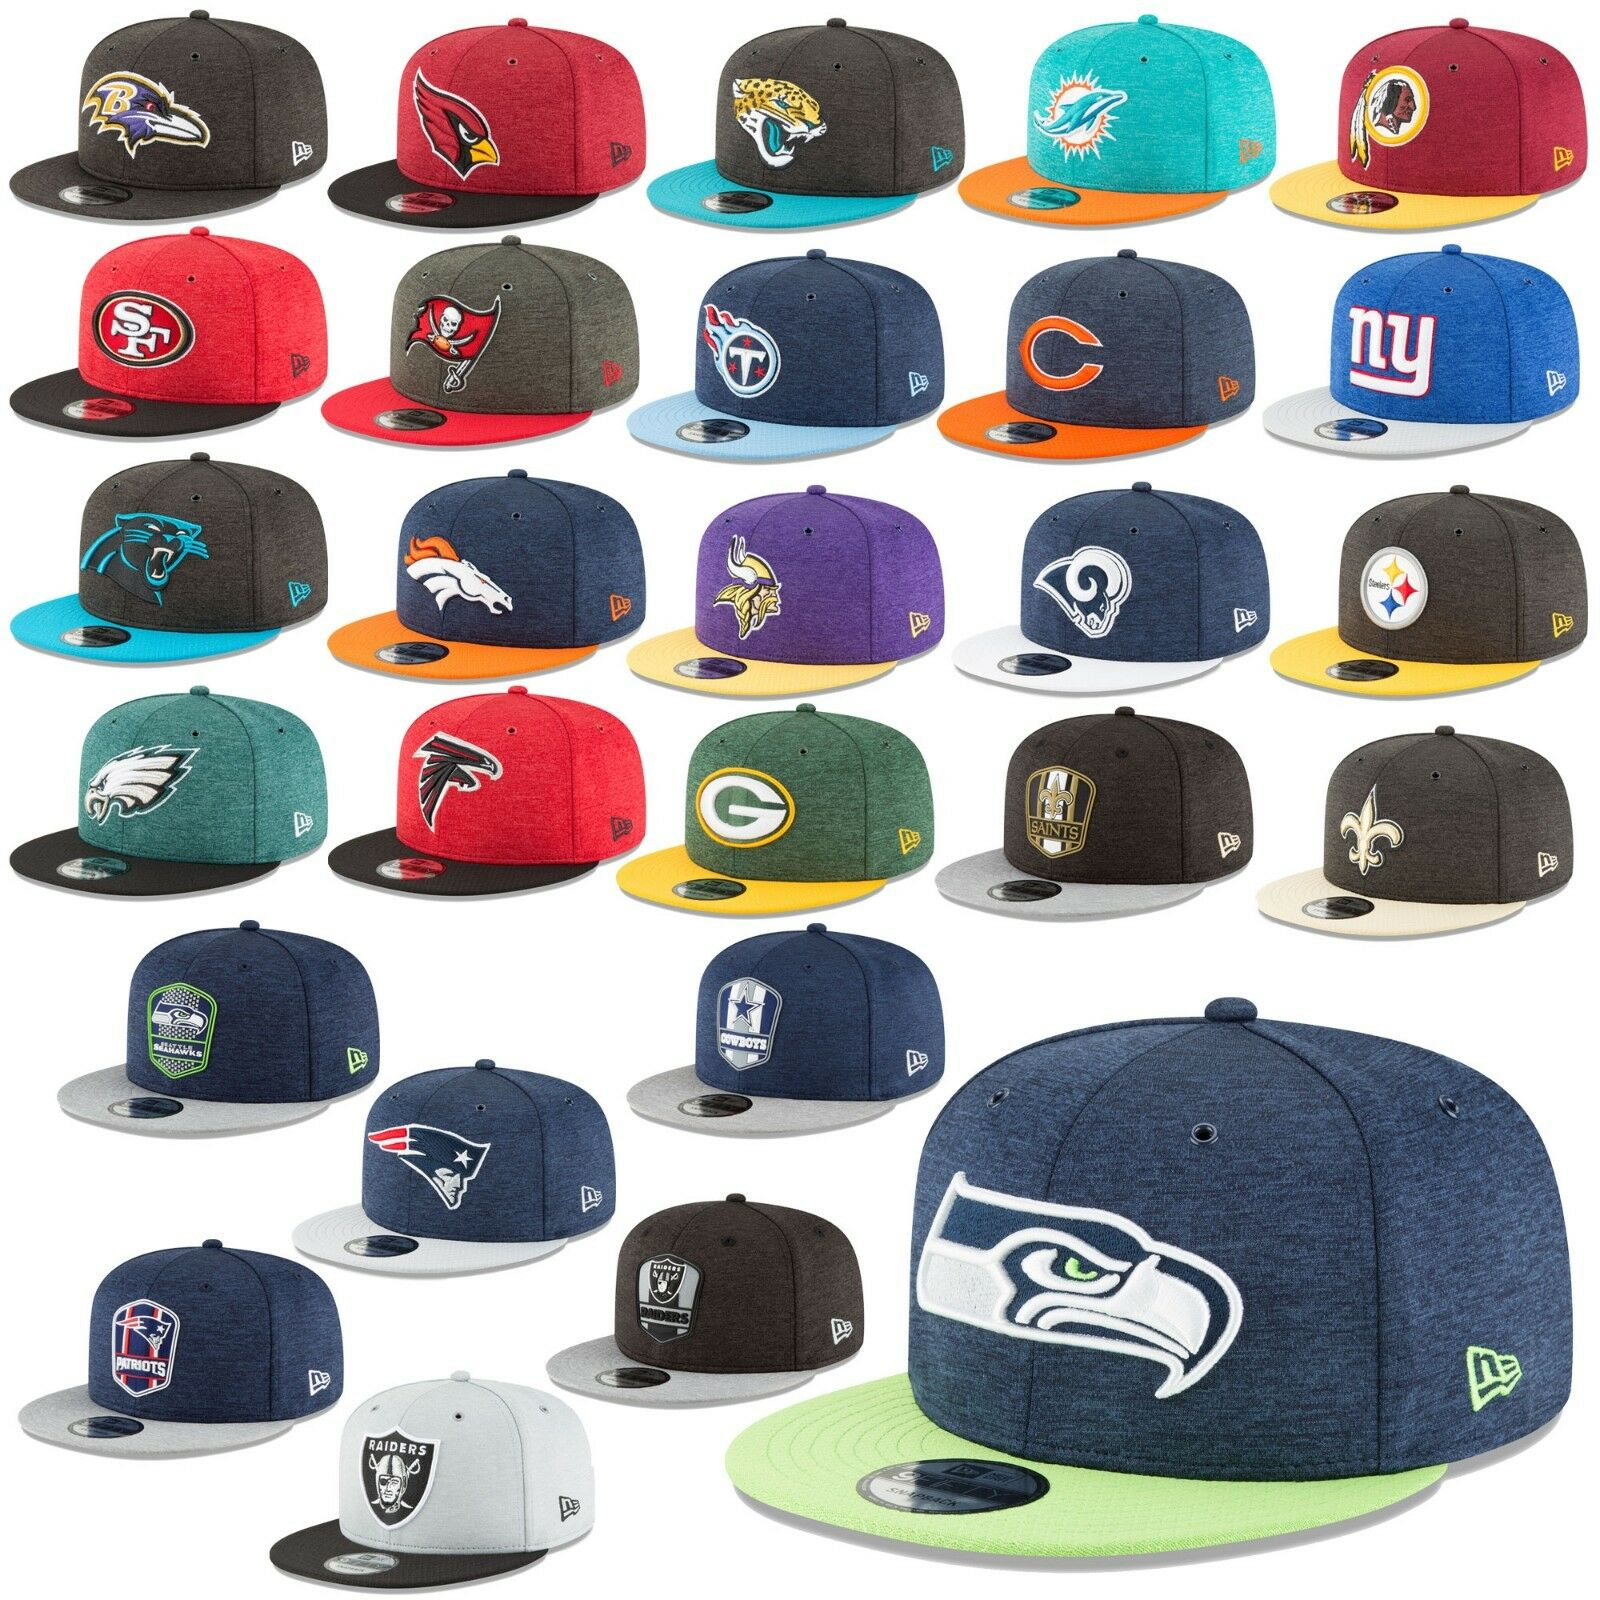 New era Cap 9fifty Snapback Cap NFL sideline 18 19 Seahawks Patriots  Raiders etc 85ae47be5508